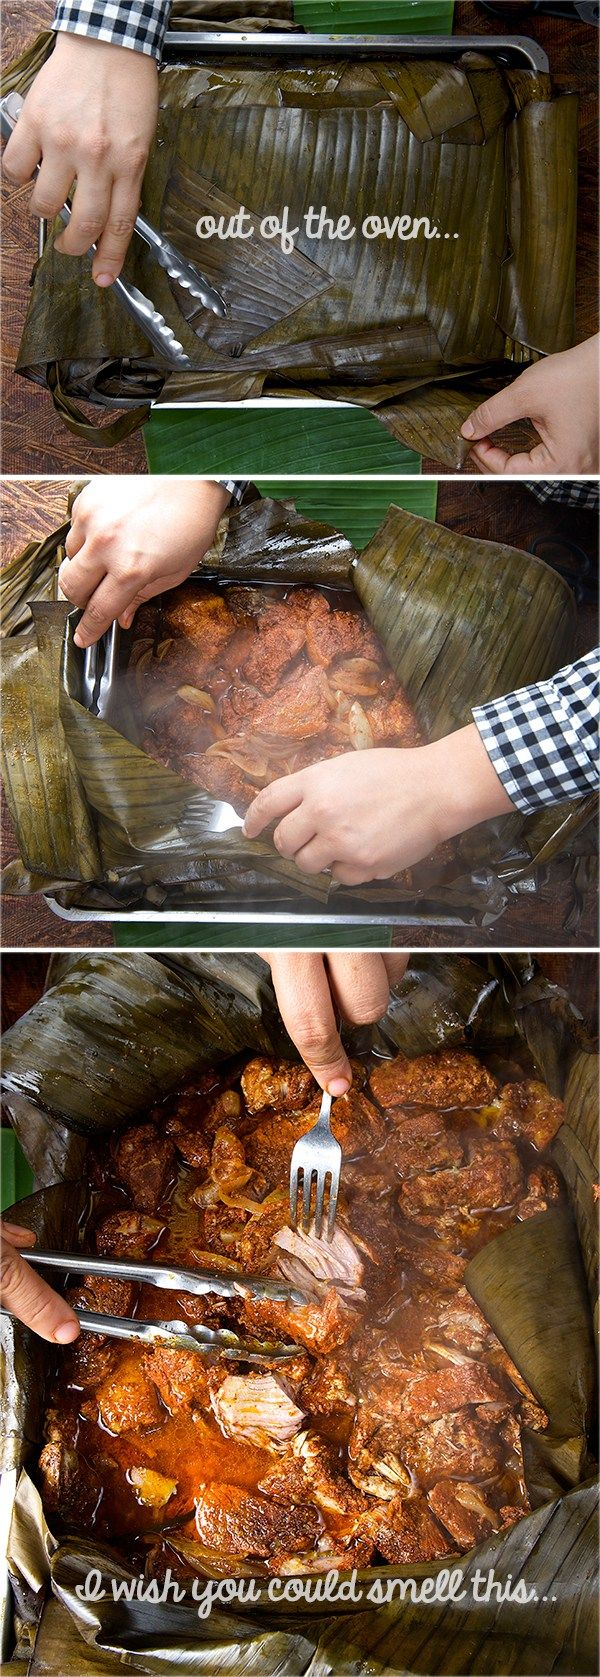 Cochinita-Pibil_Yucatan-Style_Yes,-more-please!